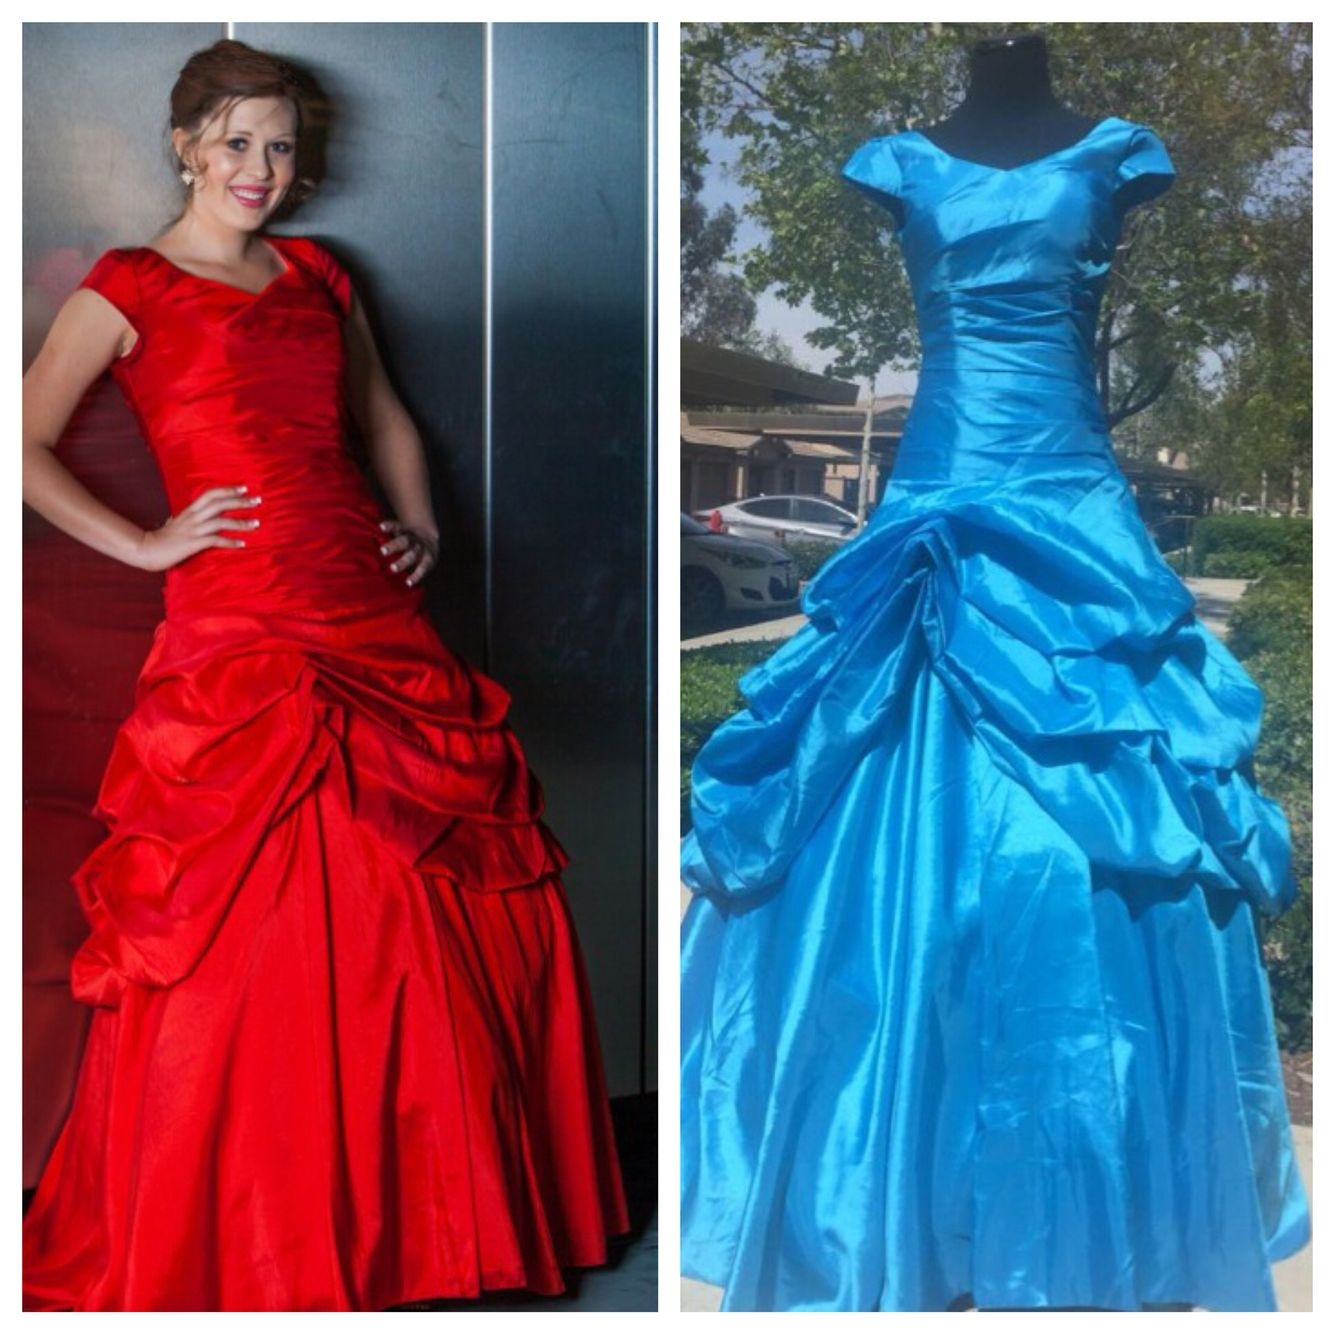 Our Modest Prom Dress Katniss In Caribbean Blue This Dress Is One